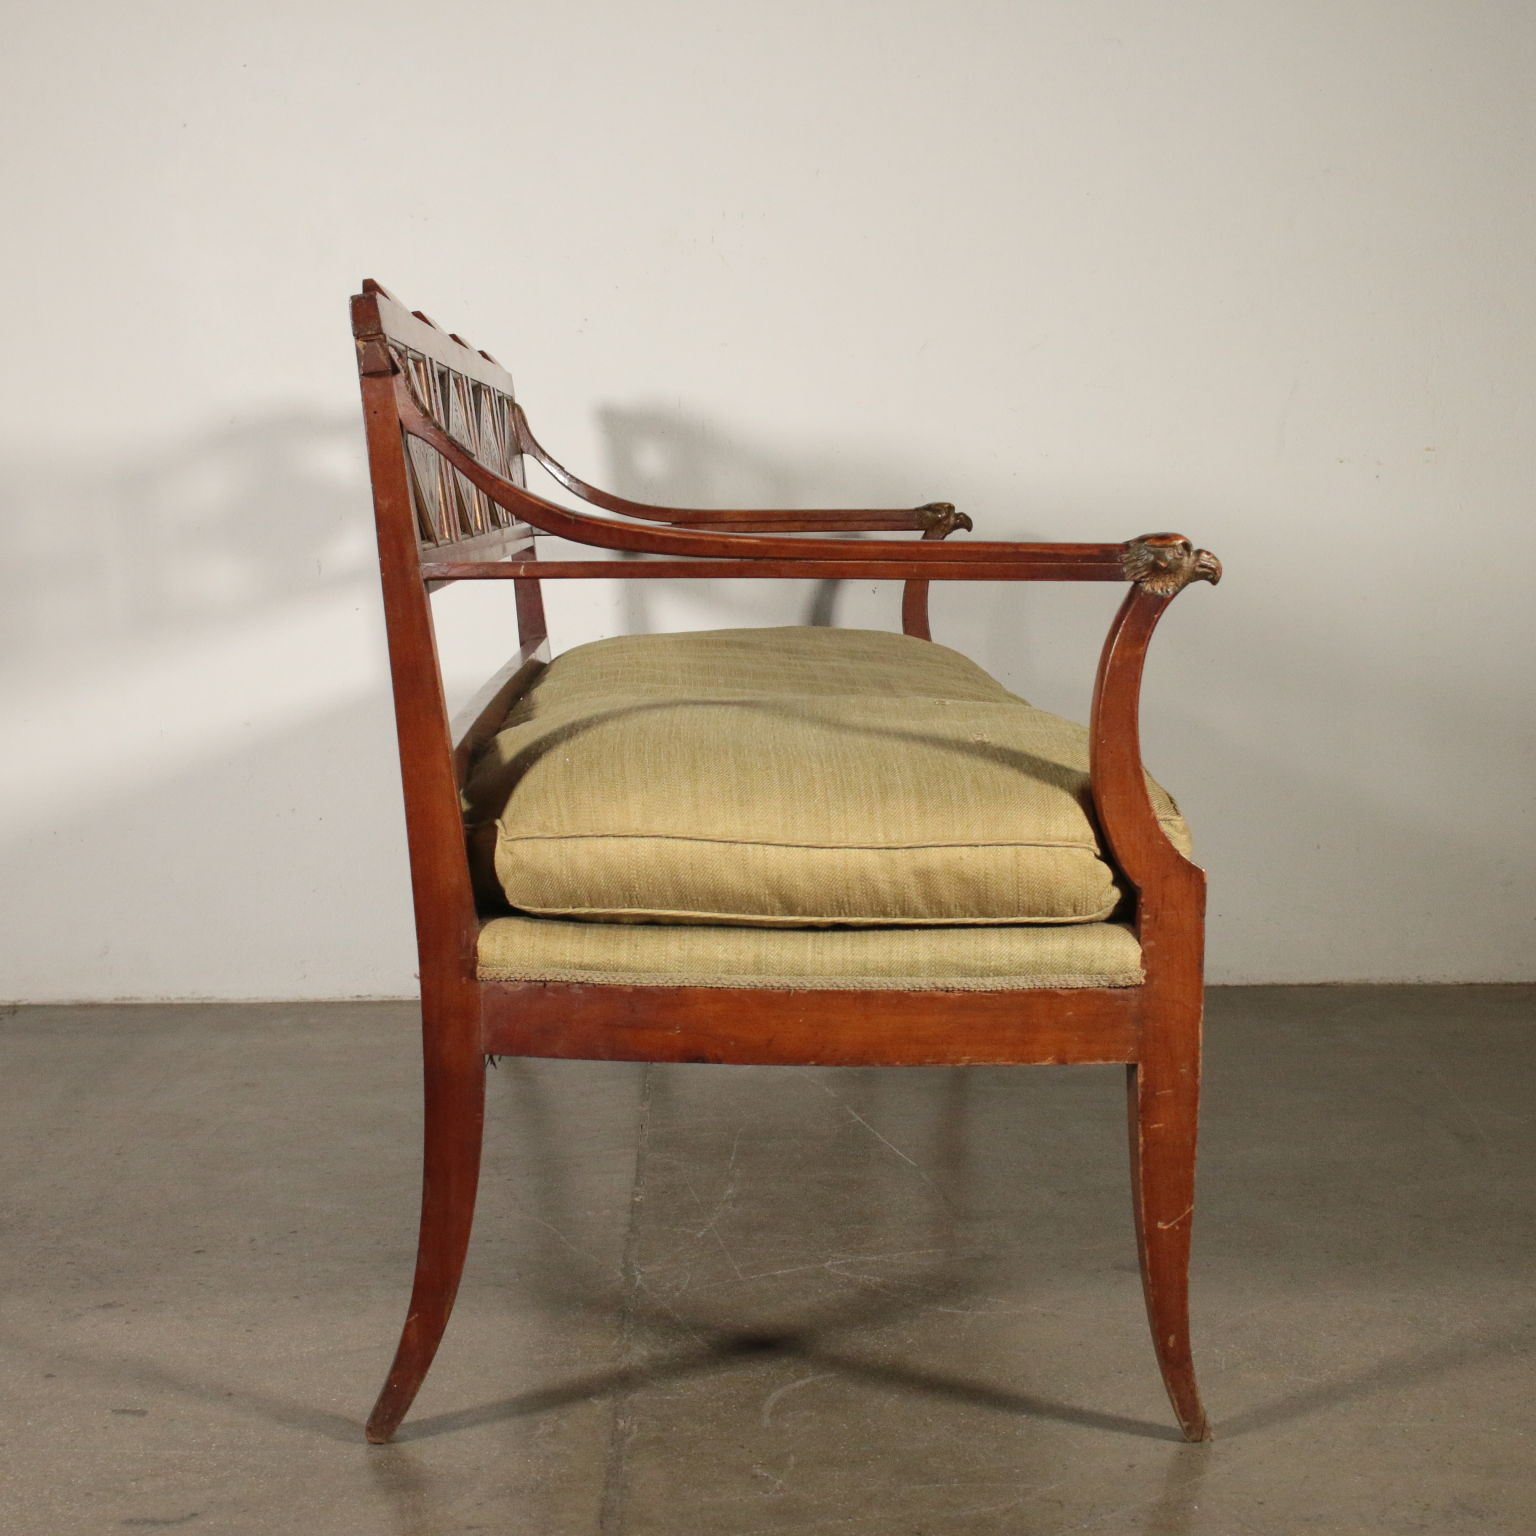 Elegant Sofa Cherry Wood Italy Early 1800s 12